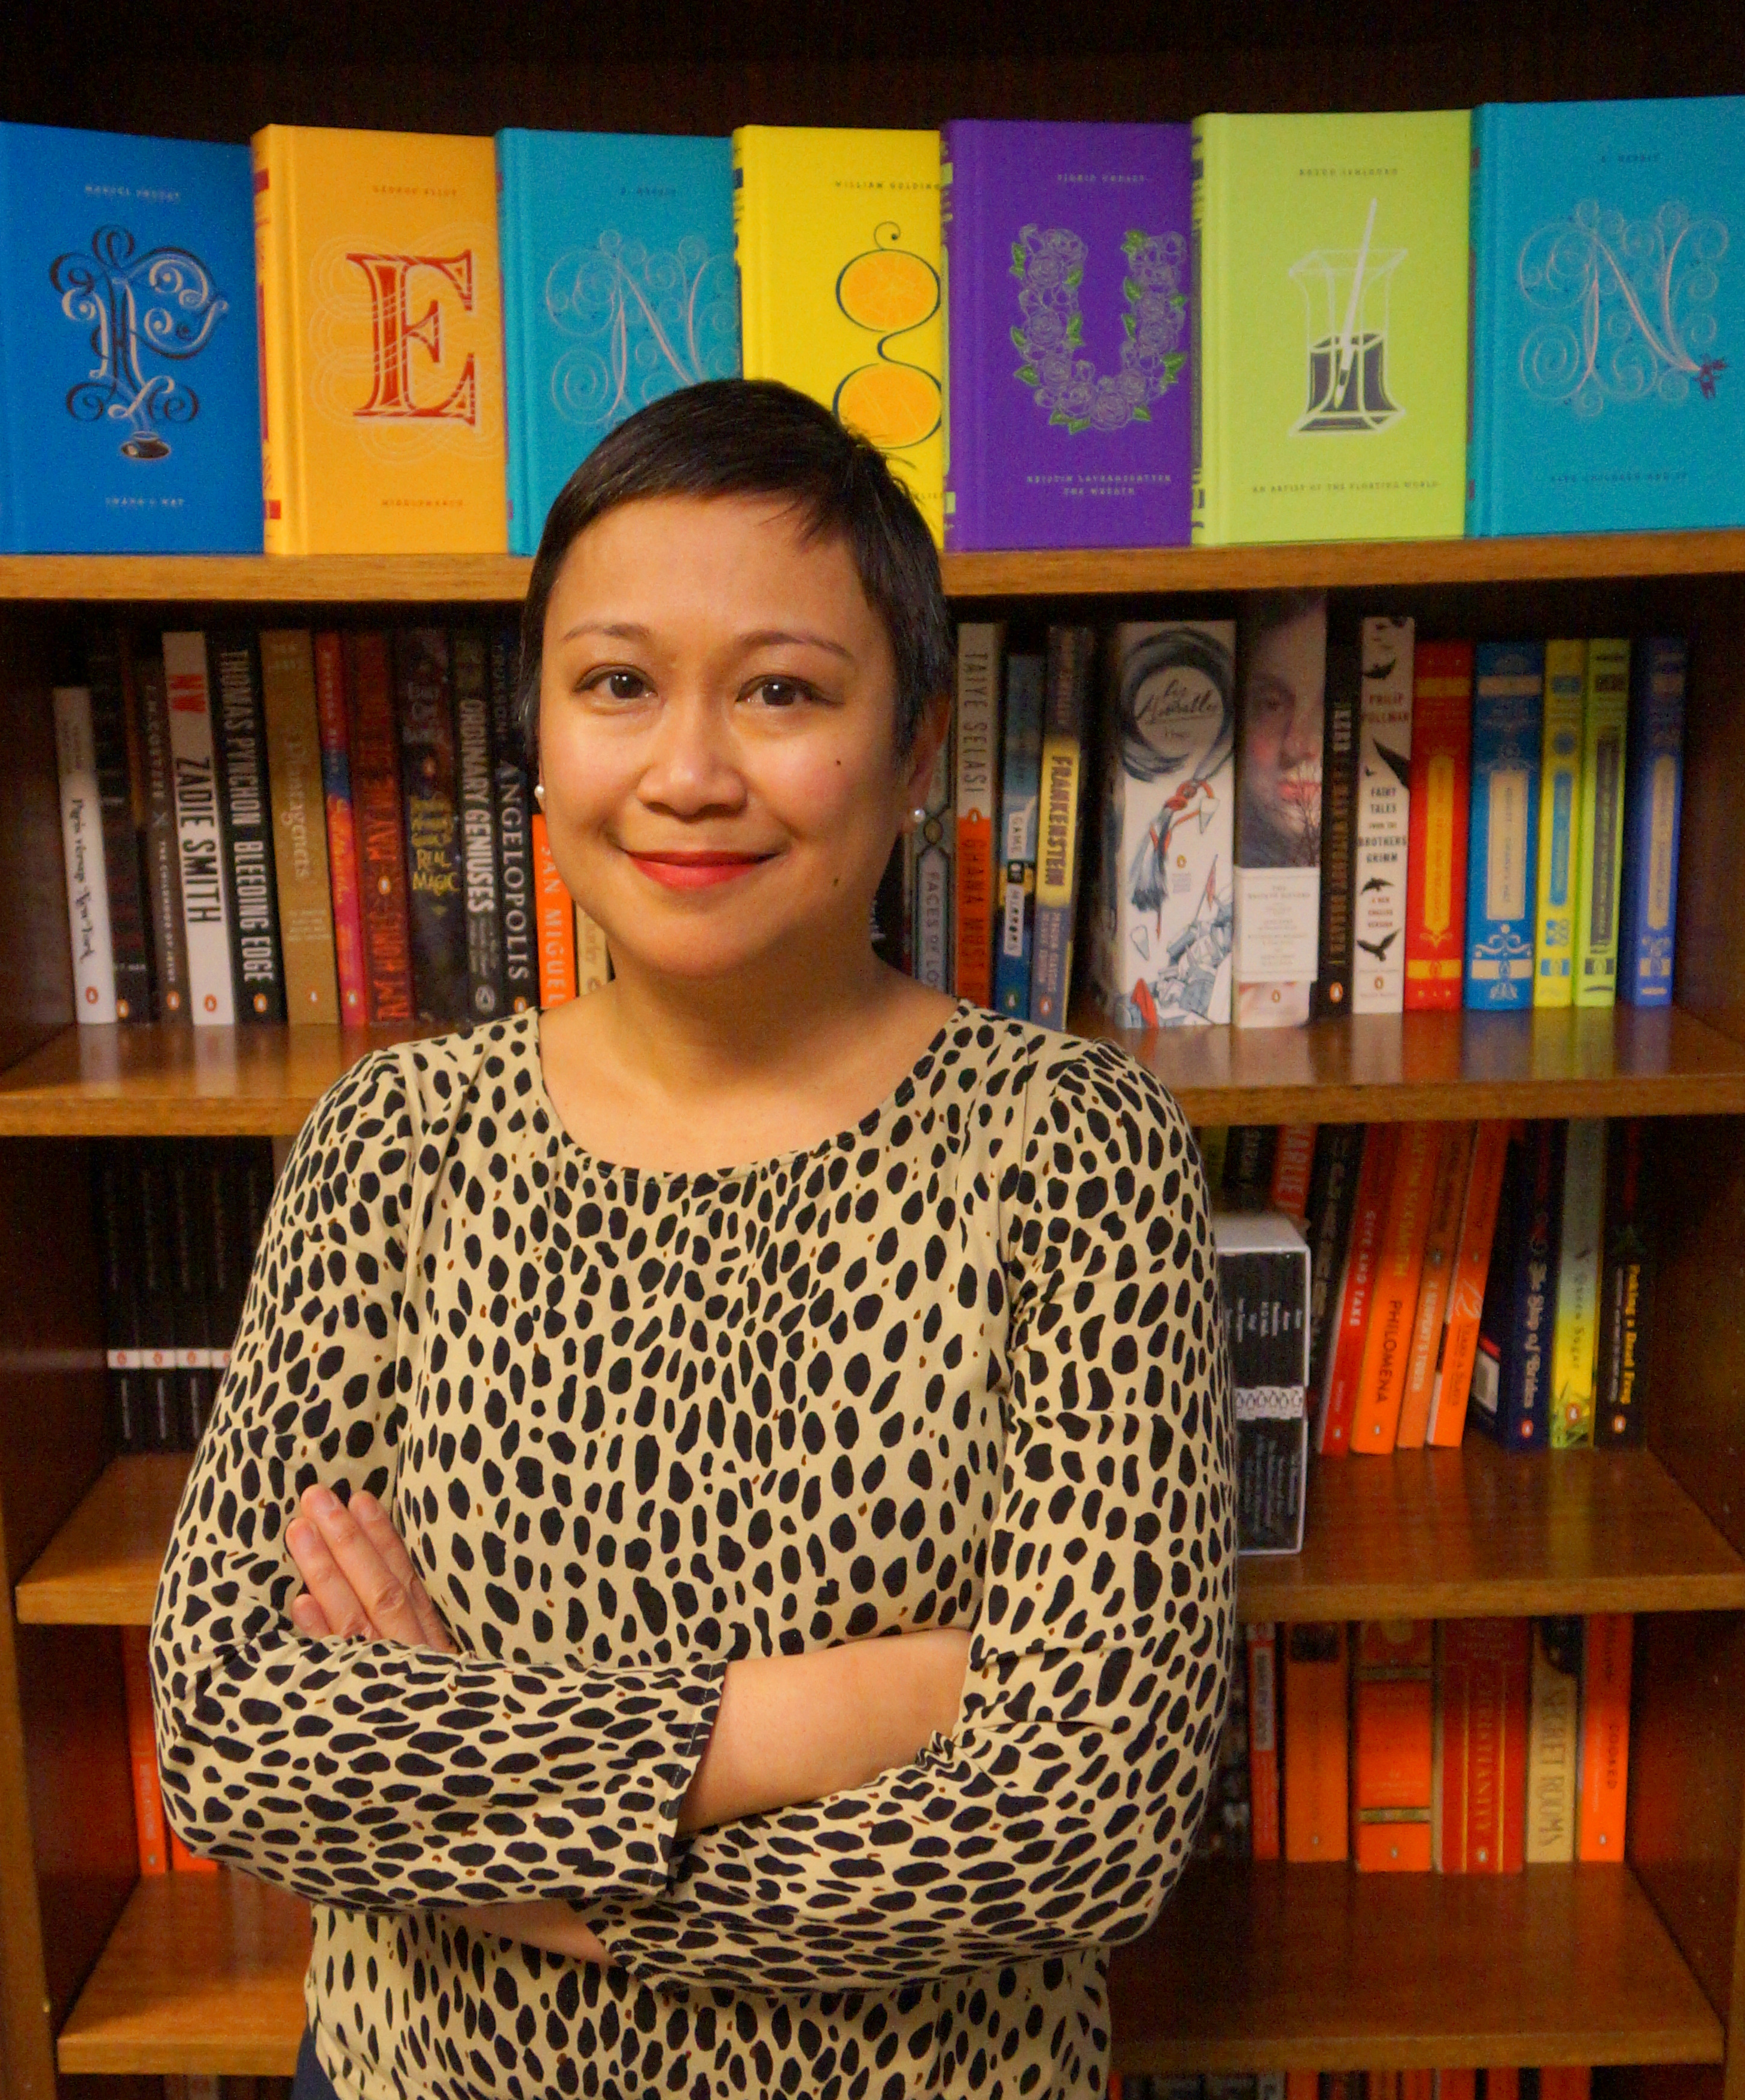 Q&A: ELDA ROTOR, VICE PRESIDENT AND PUBLISHER OF PENGUIN CLASSICS